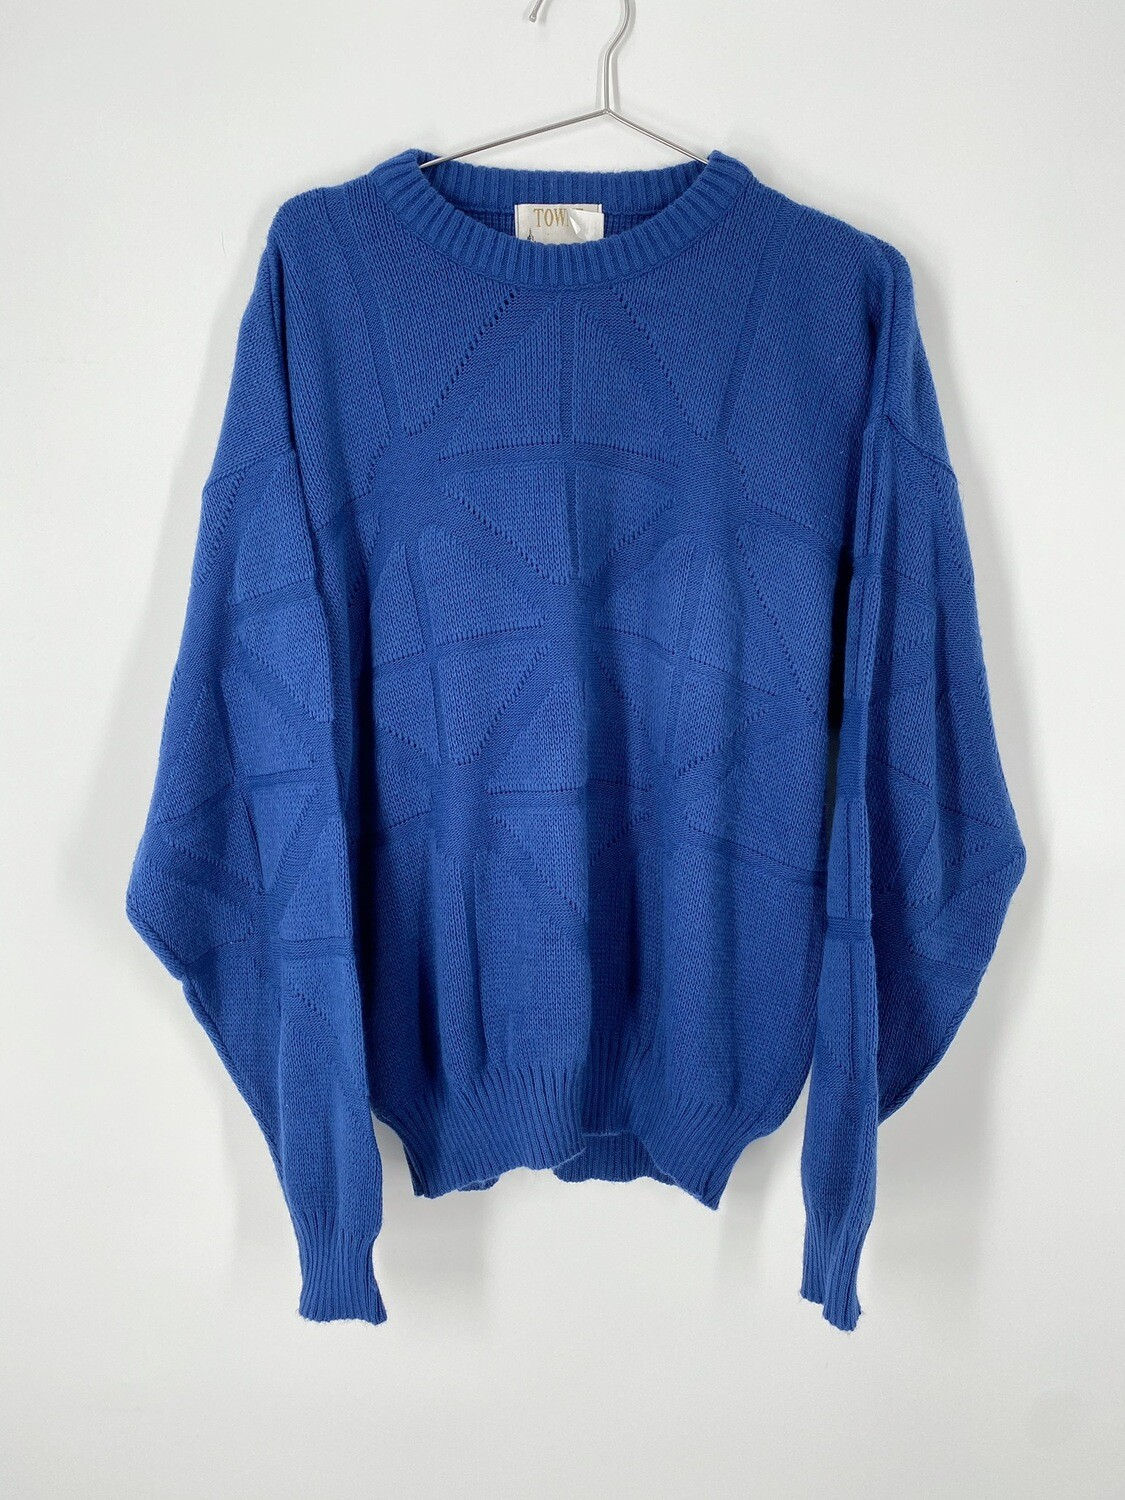 Towne By London Fog Sweater Size Large